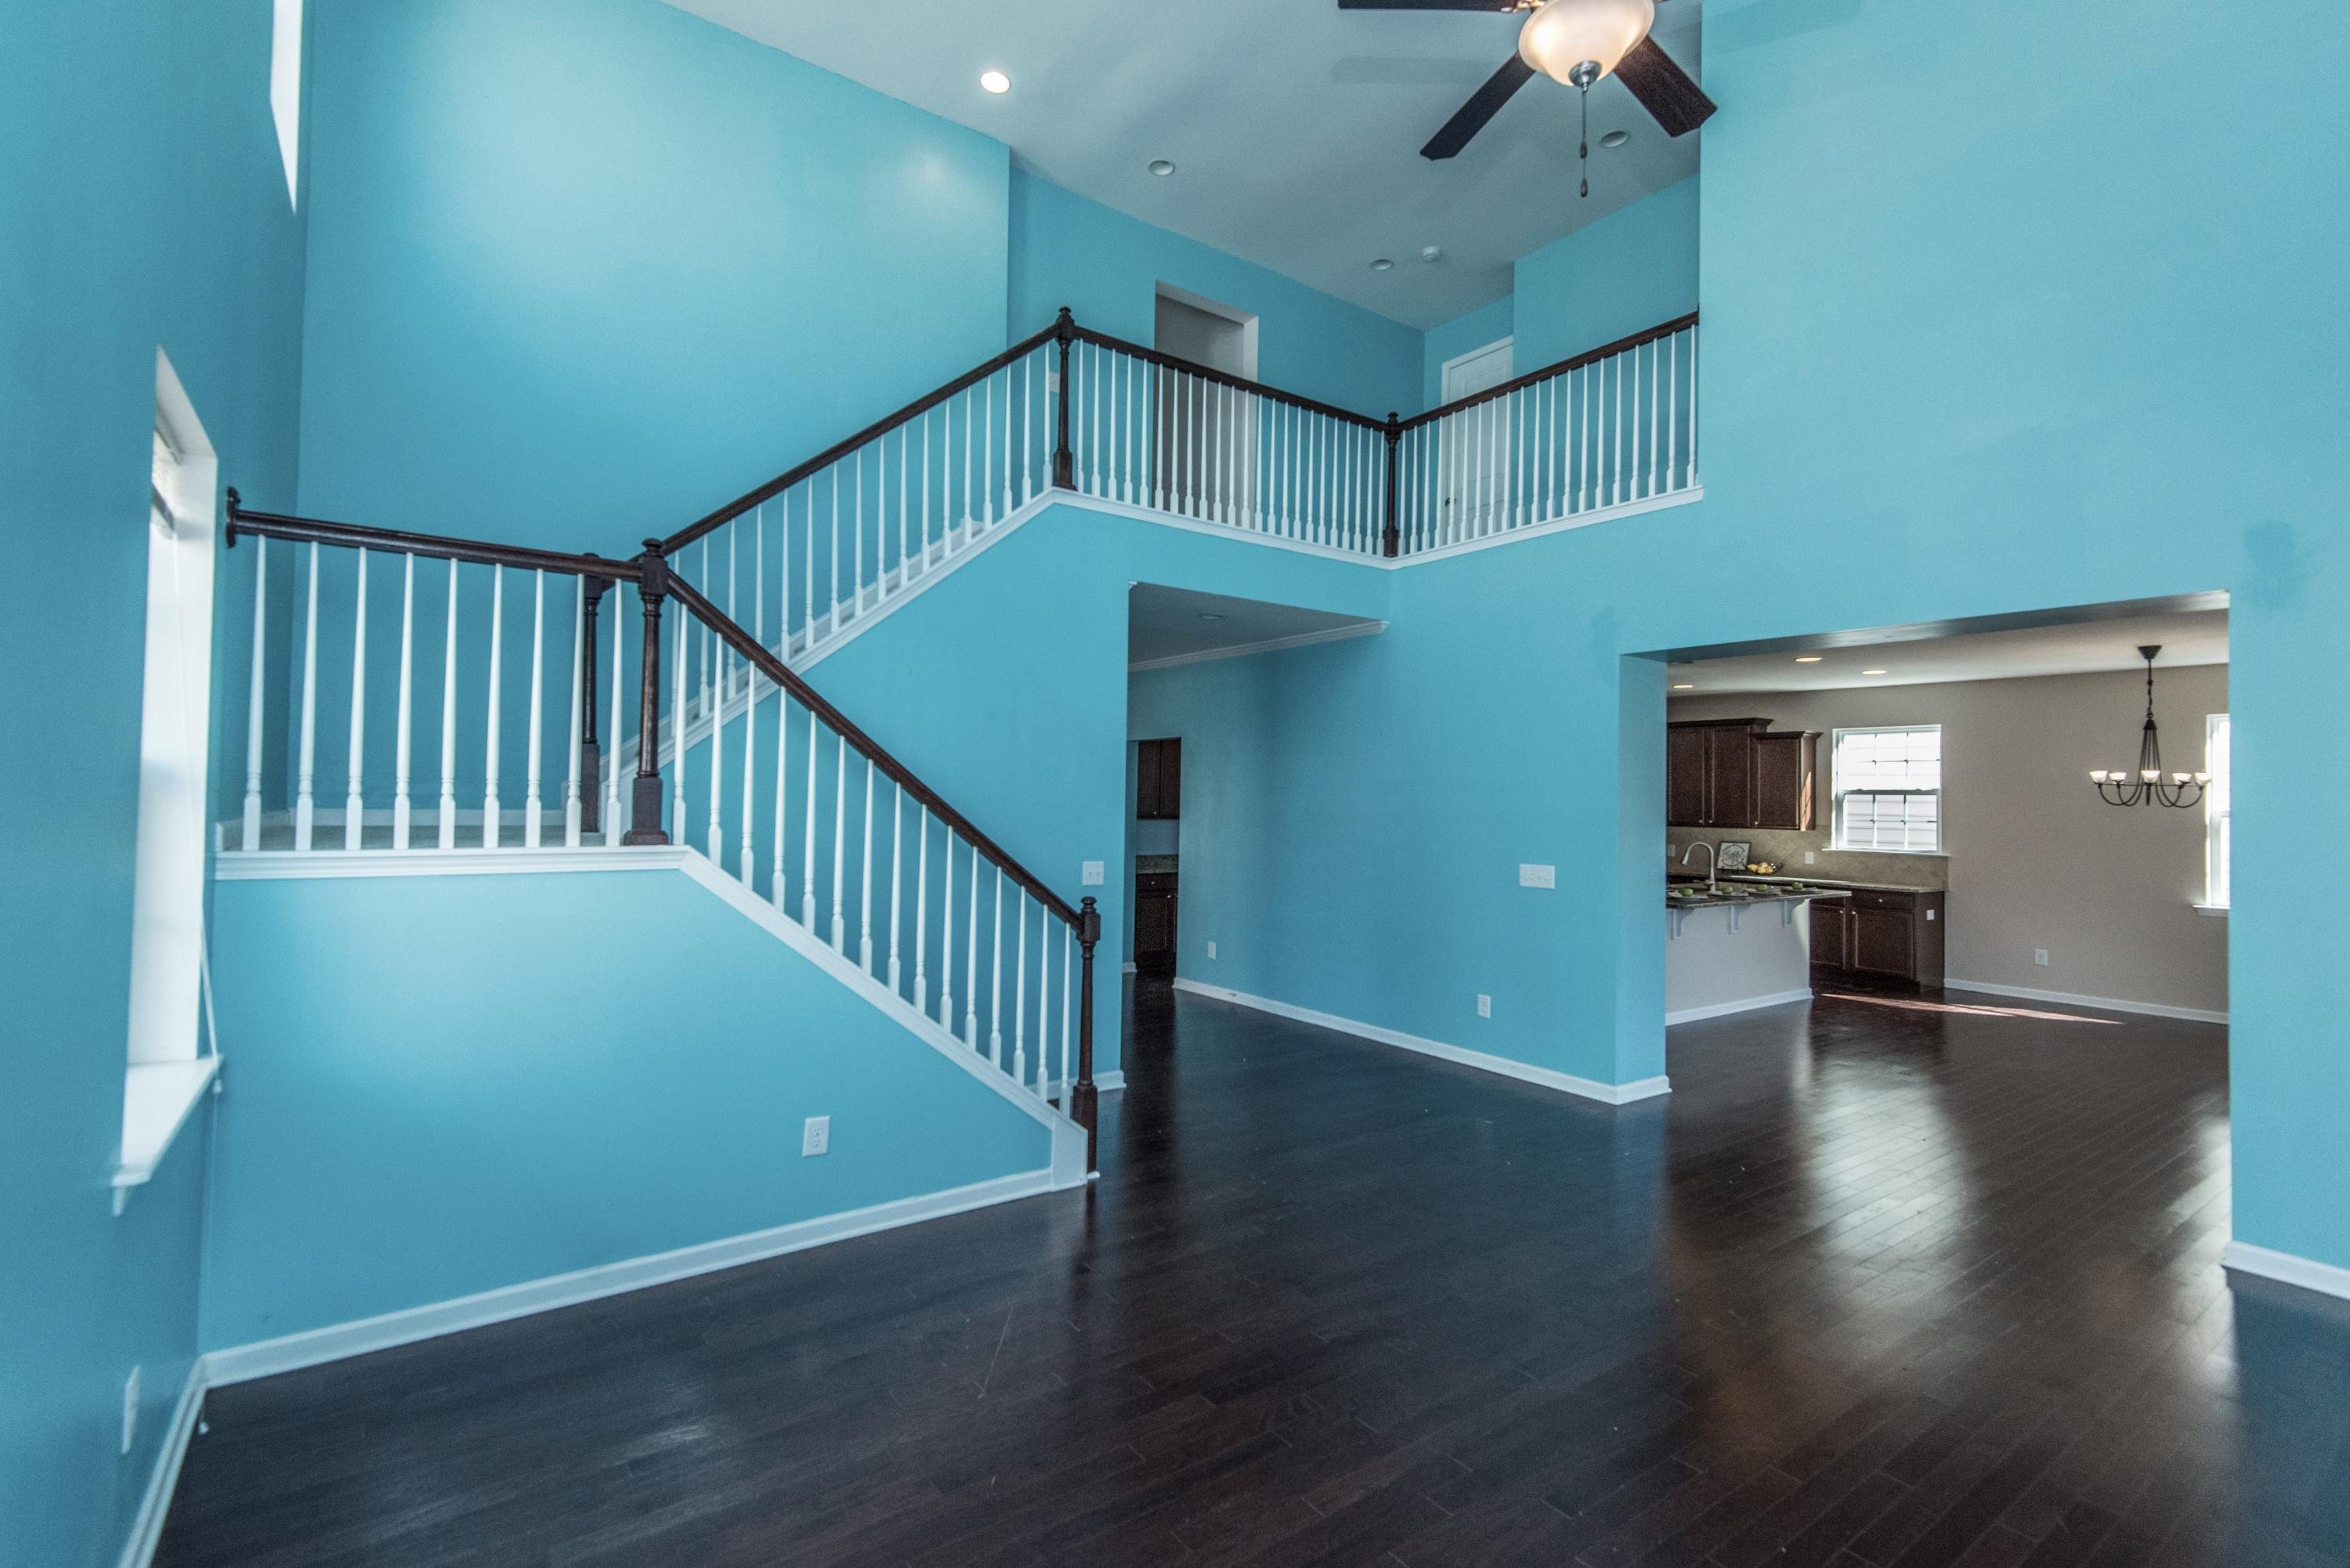 Wentworth Hall Homes For Sale - 216 Wexford, Summerville, SC - 0